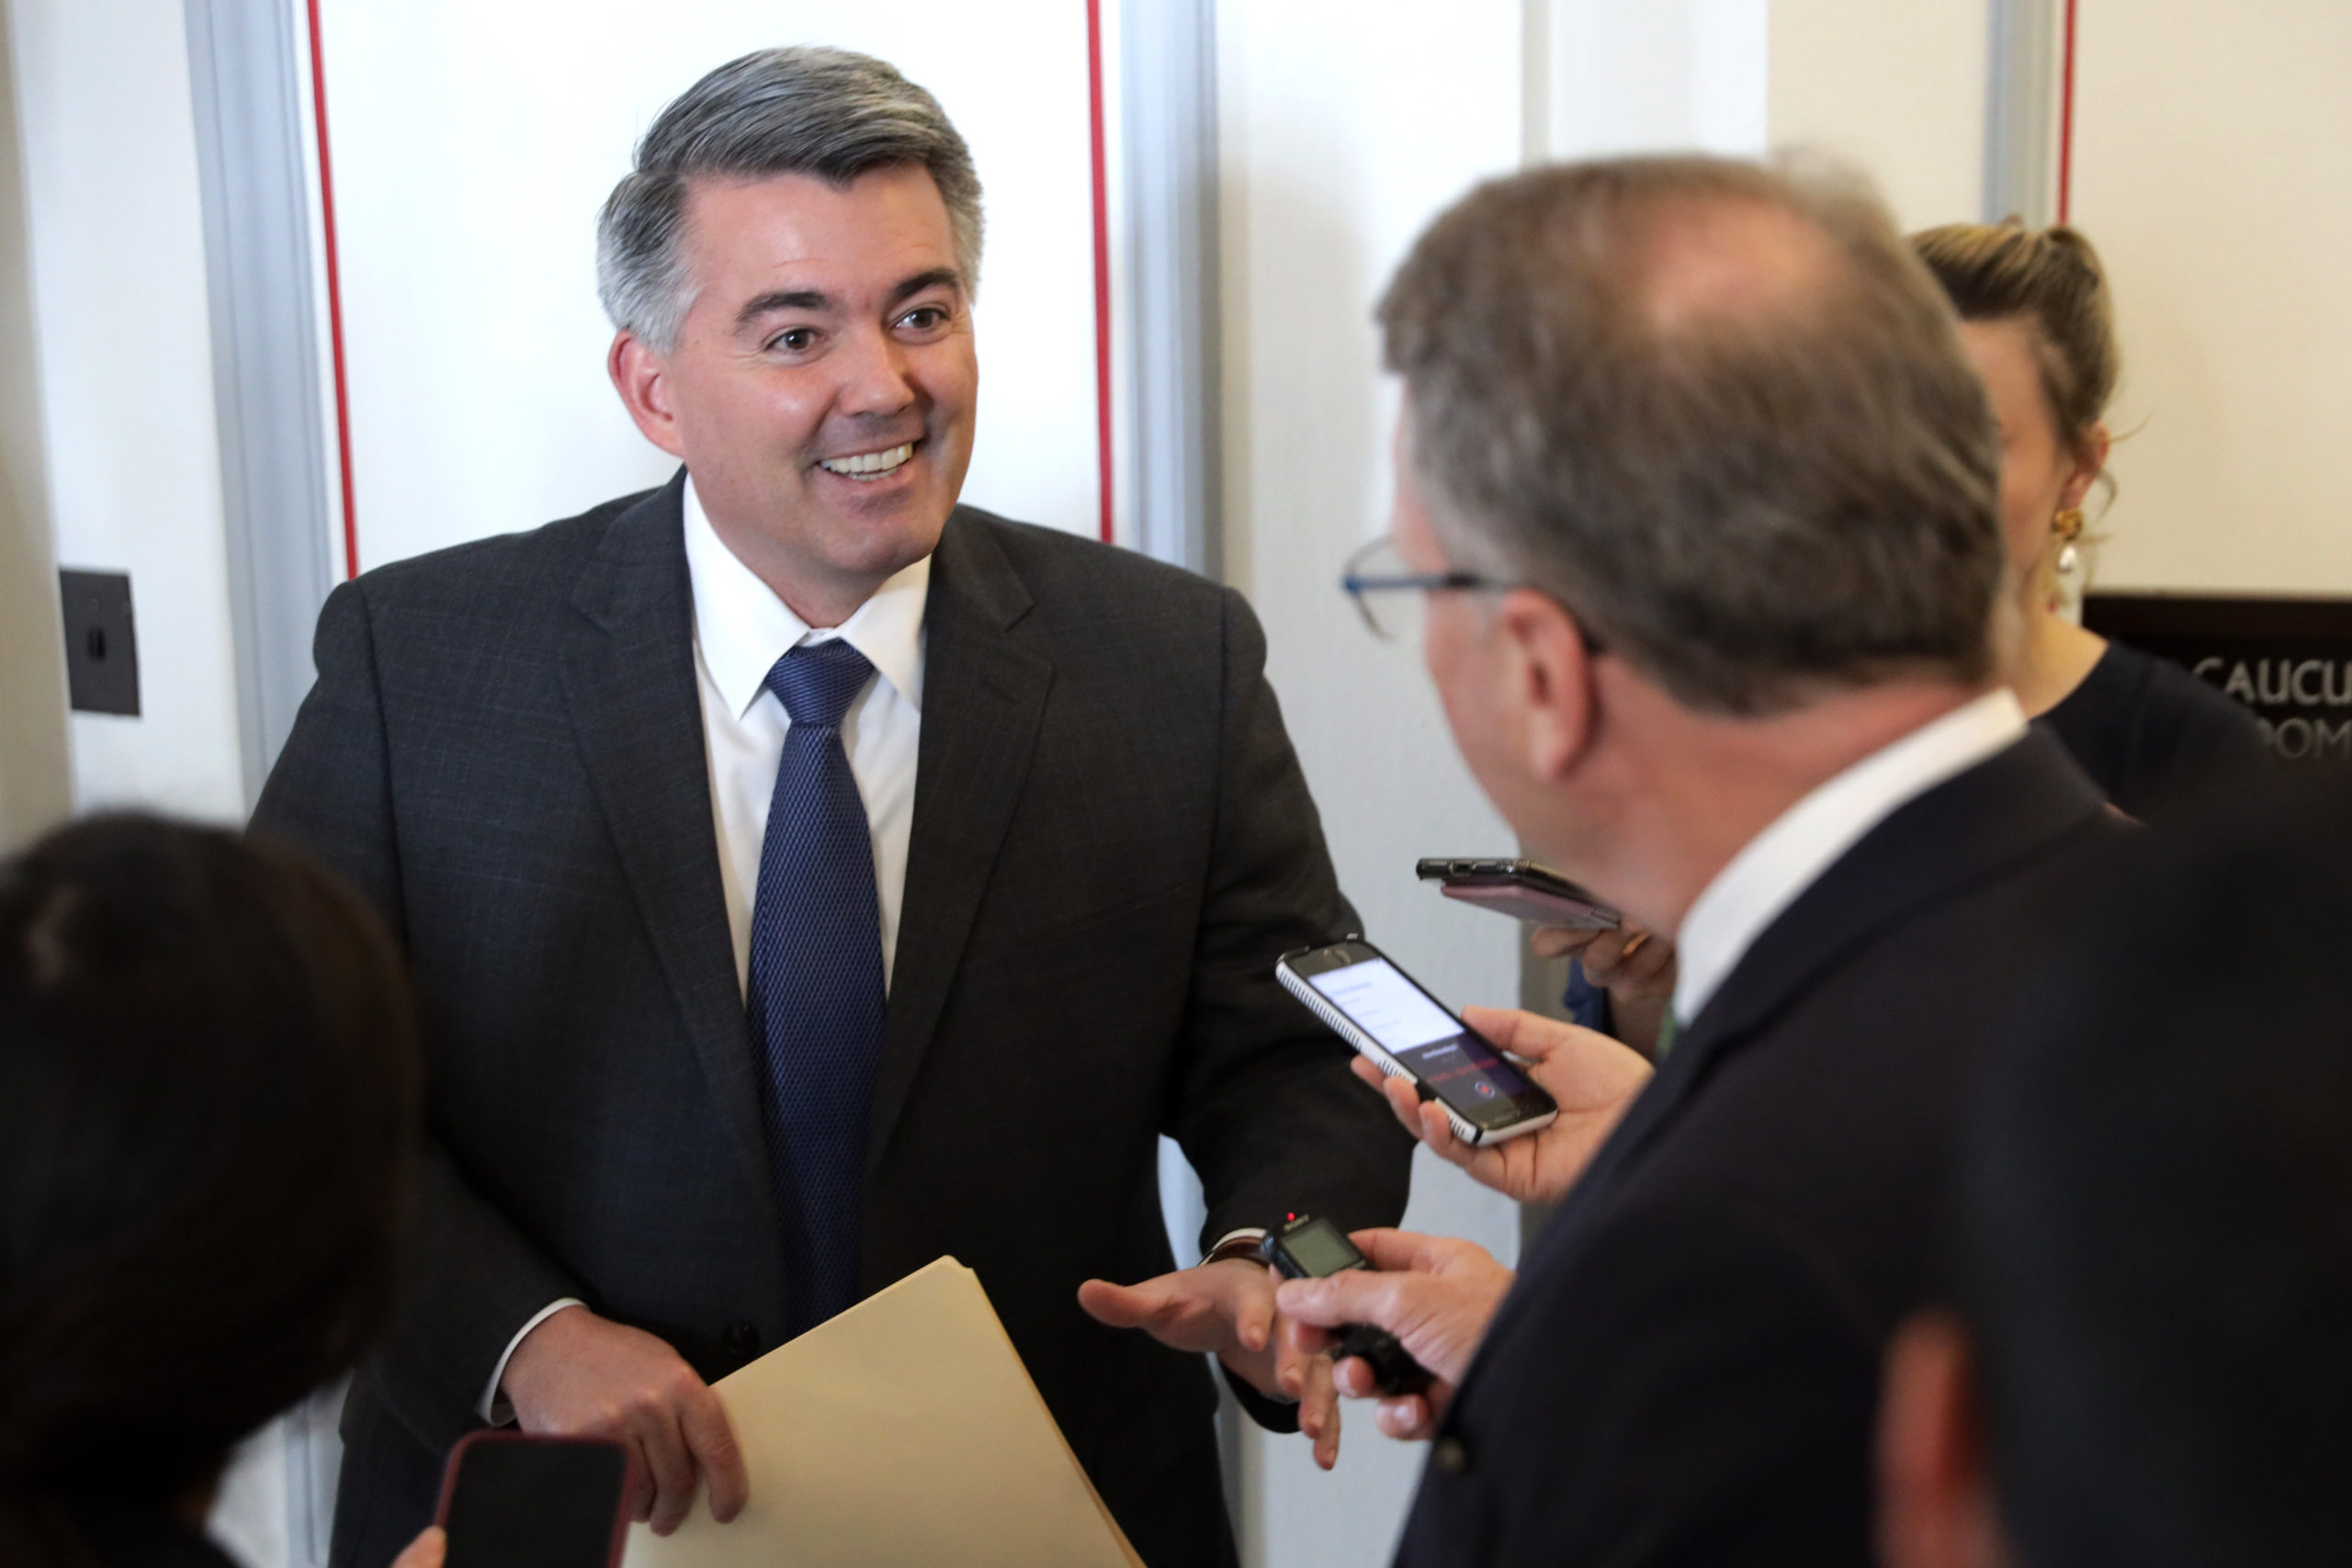 WASHINGTON, DC - MARCH 17: U.S. Sen. Cory Gardner (R-CO) speaks to members of the media as he arrives at the weekly Senate Republican Policy Luncheon March 17, 2020 at Russell Senate Office Building on Capitol Hill in Washington, DC. U.S. Secretary of the Treasury Steven Mnuchin is on Capitol Hill to urge senate GOPs to approve the passed House package in response to the outbreak of COVID-19, also known as coronavirus. (Photo by Alex Wong/Getty Images)